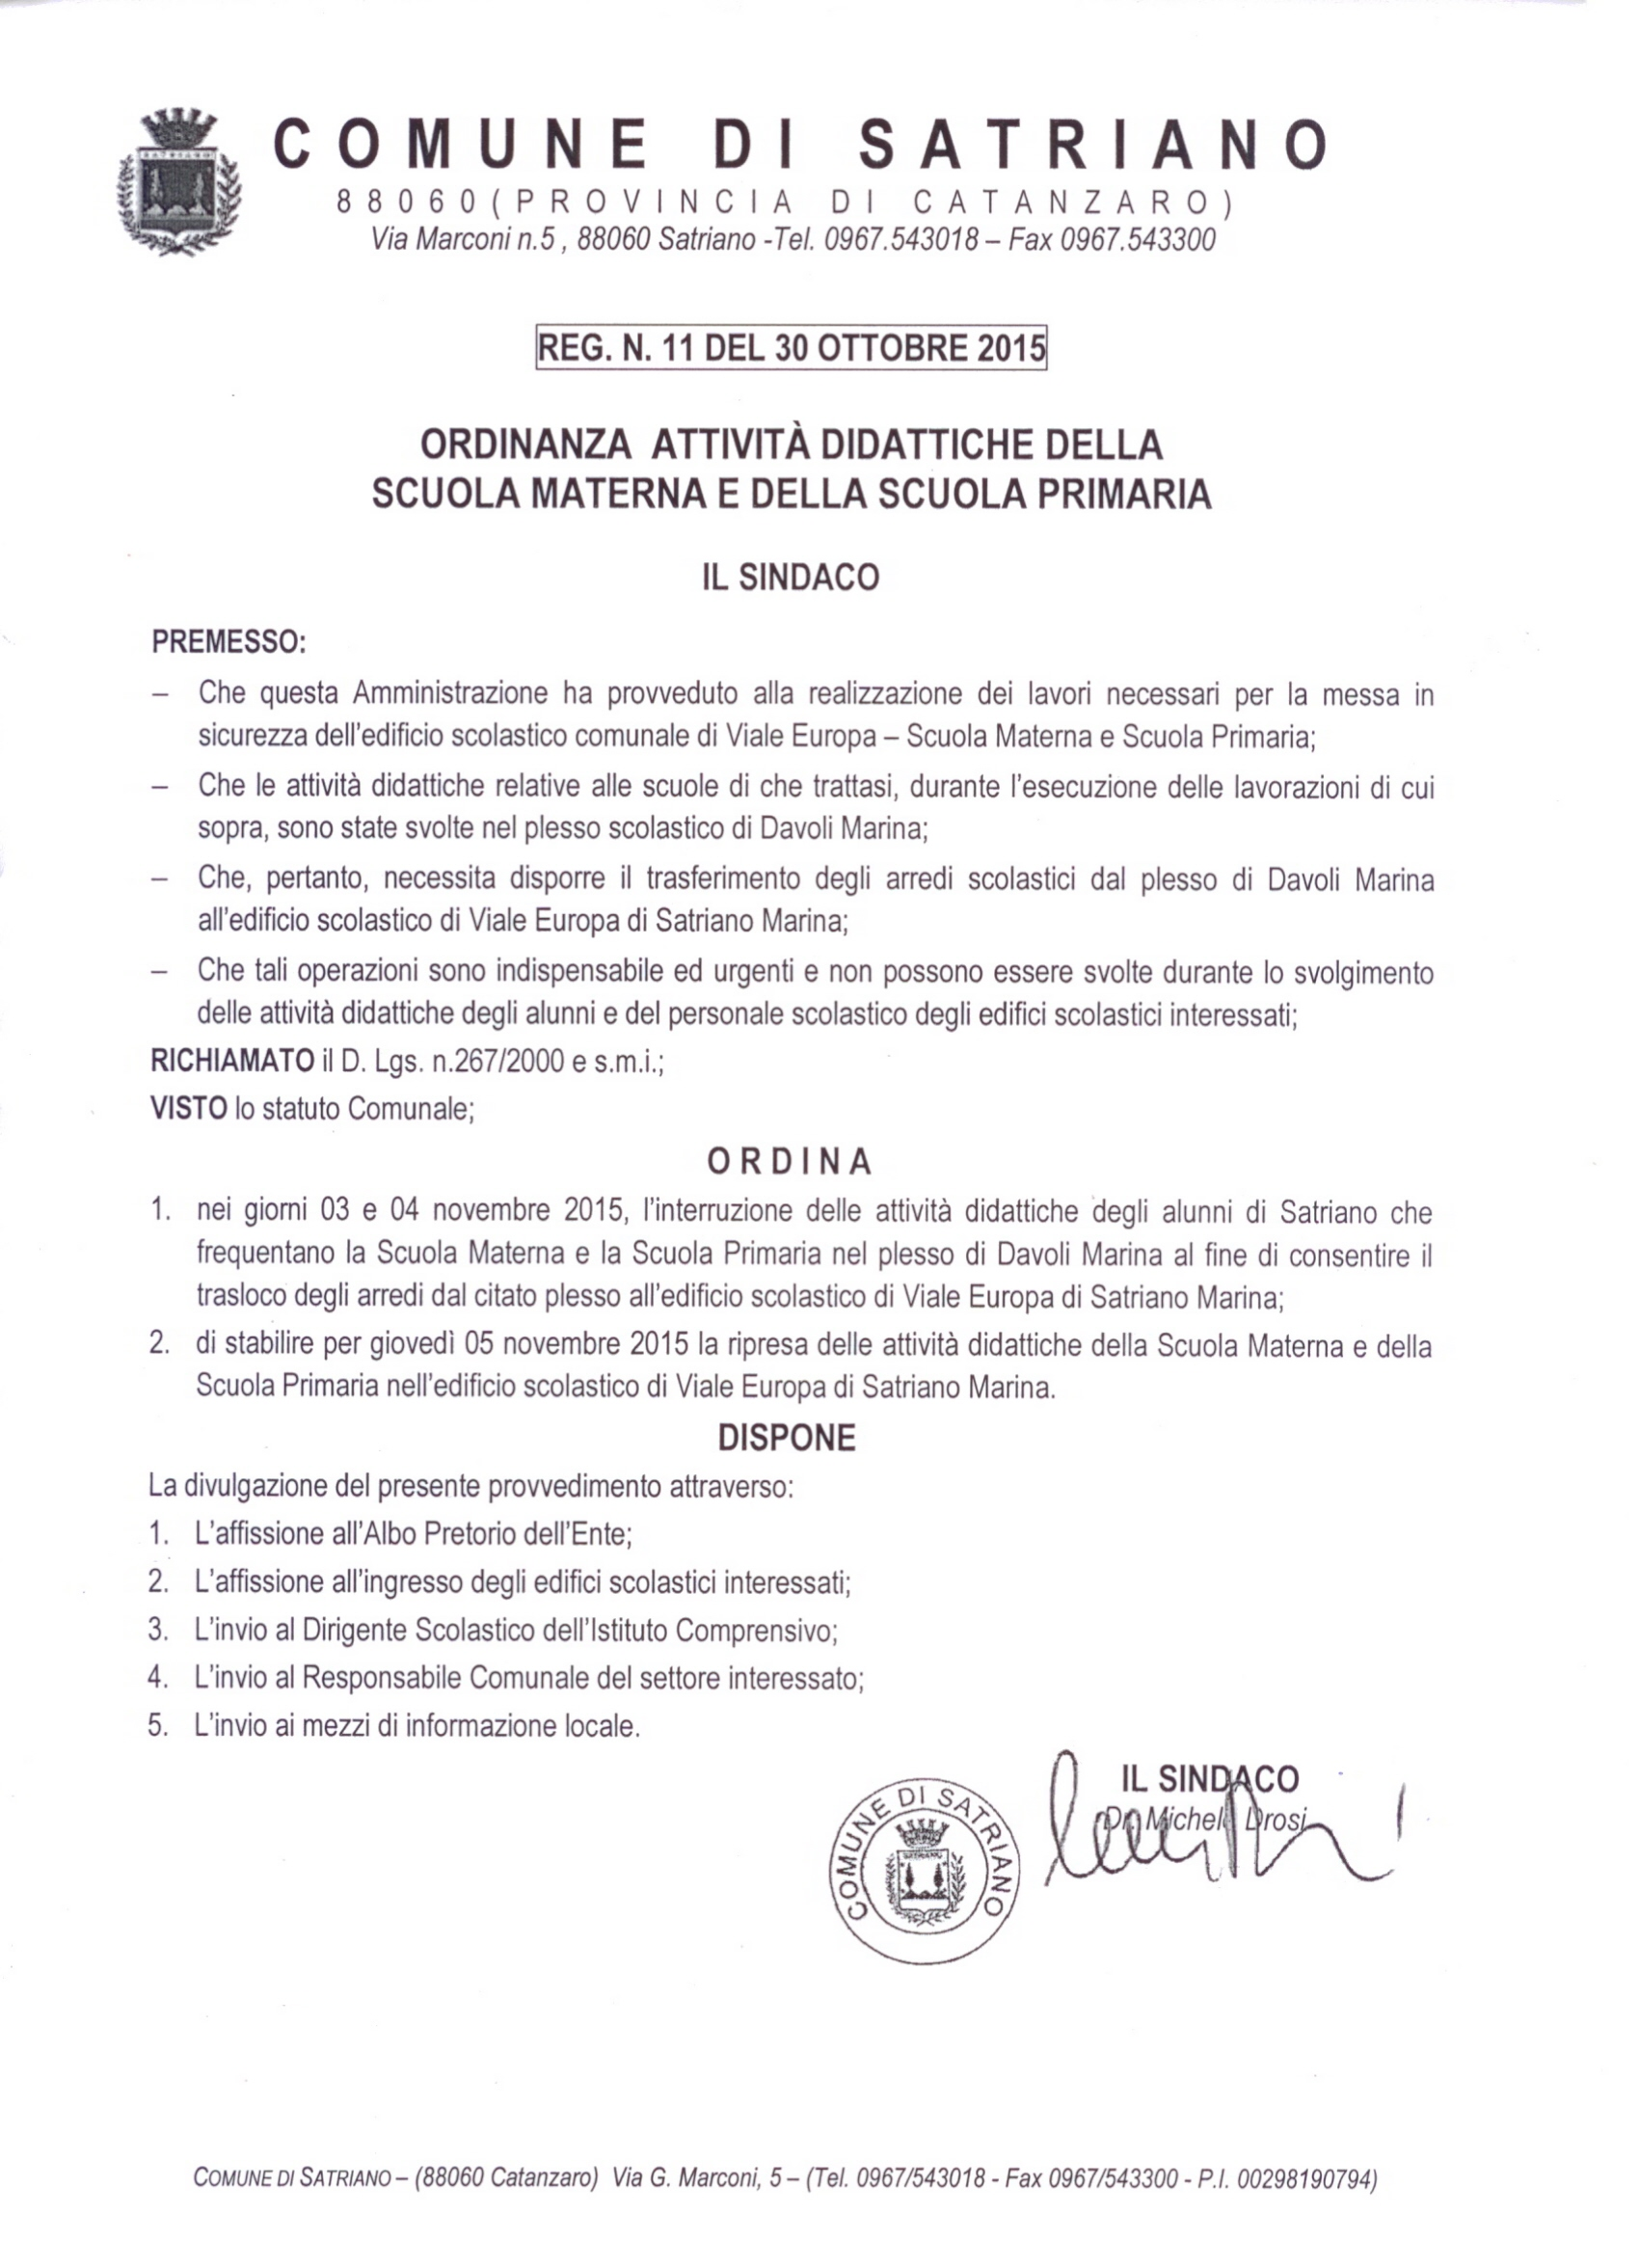 ord scuoa 30 oct 2015 sindacale